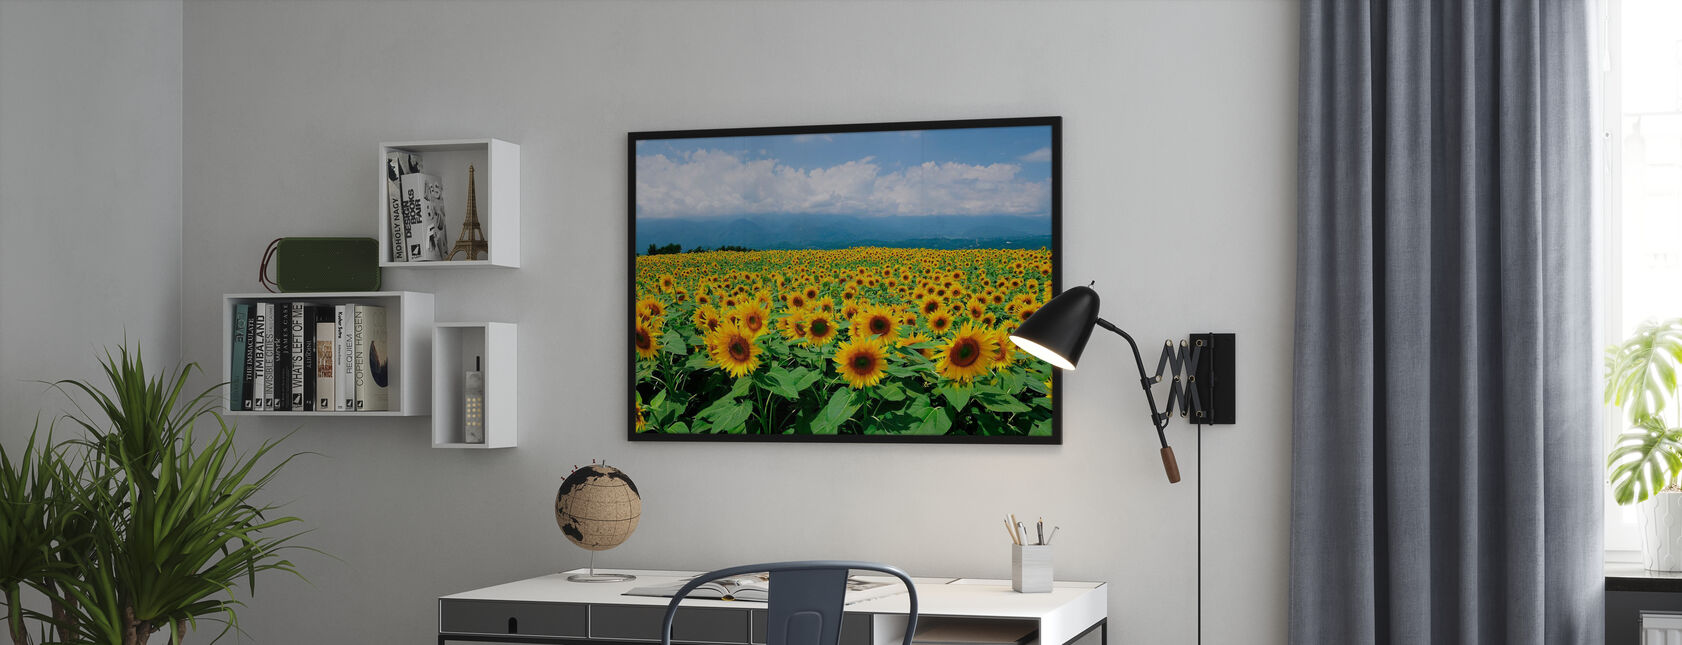 Sunflowers in Sunny Weather - Poster - Office